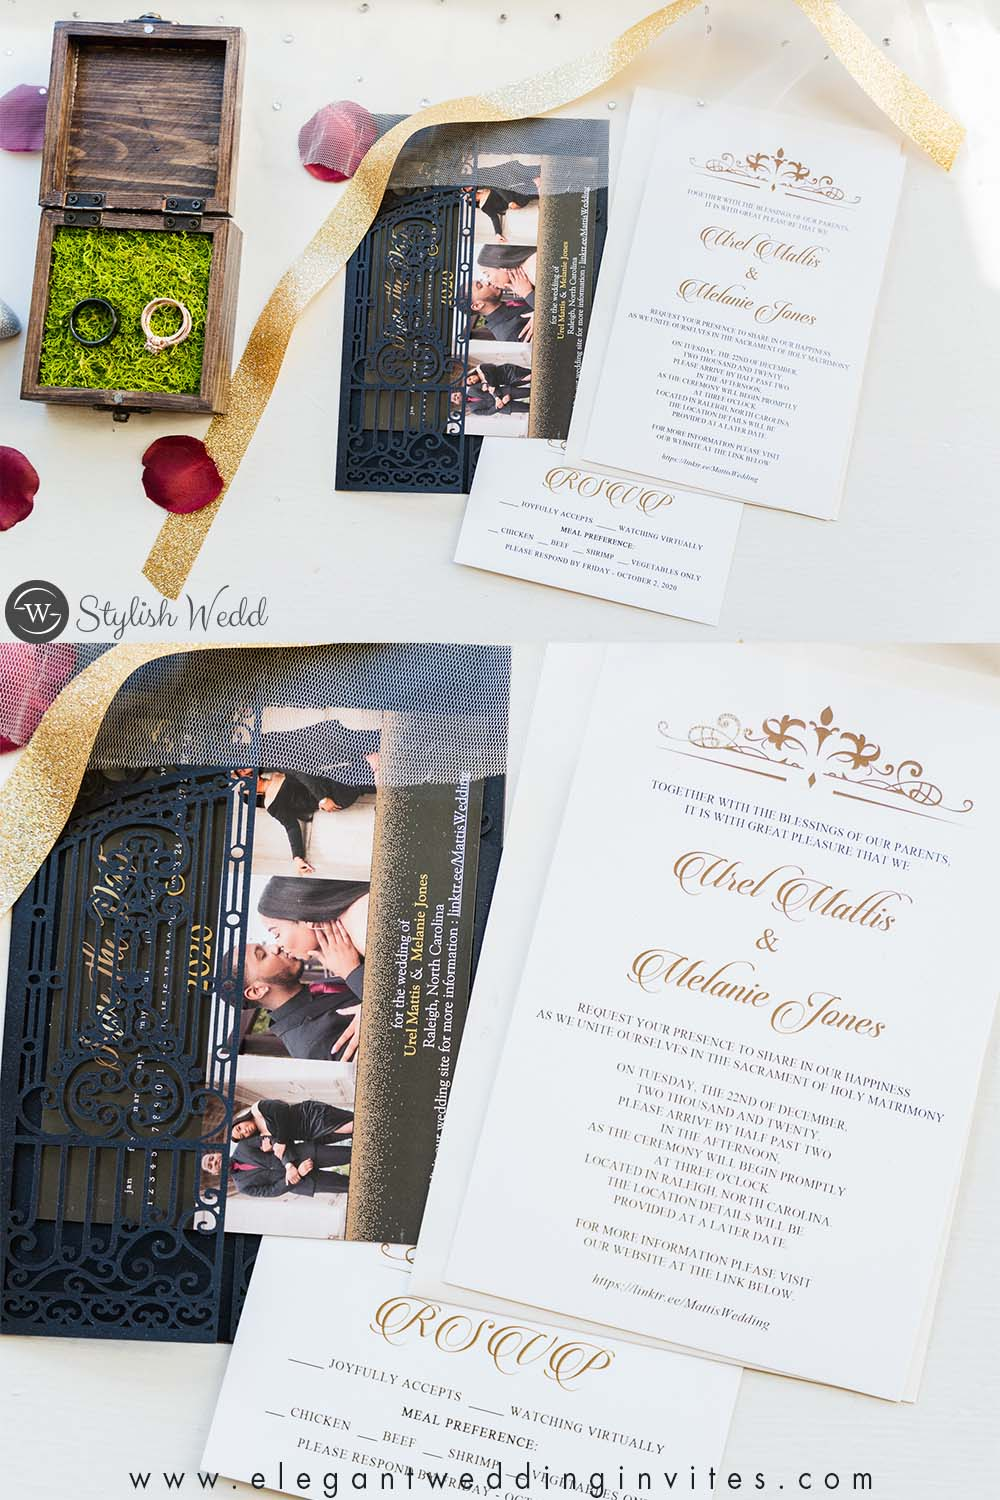 Influencer's Video Where to Buy and design Your Own Wedding Invitations online